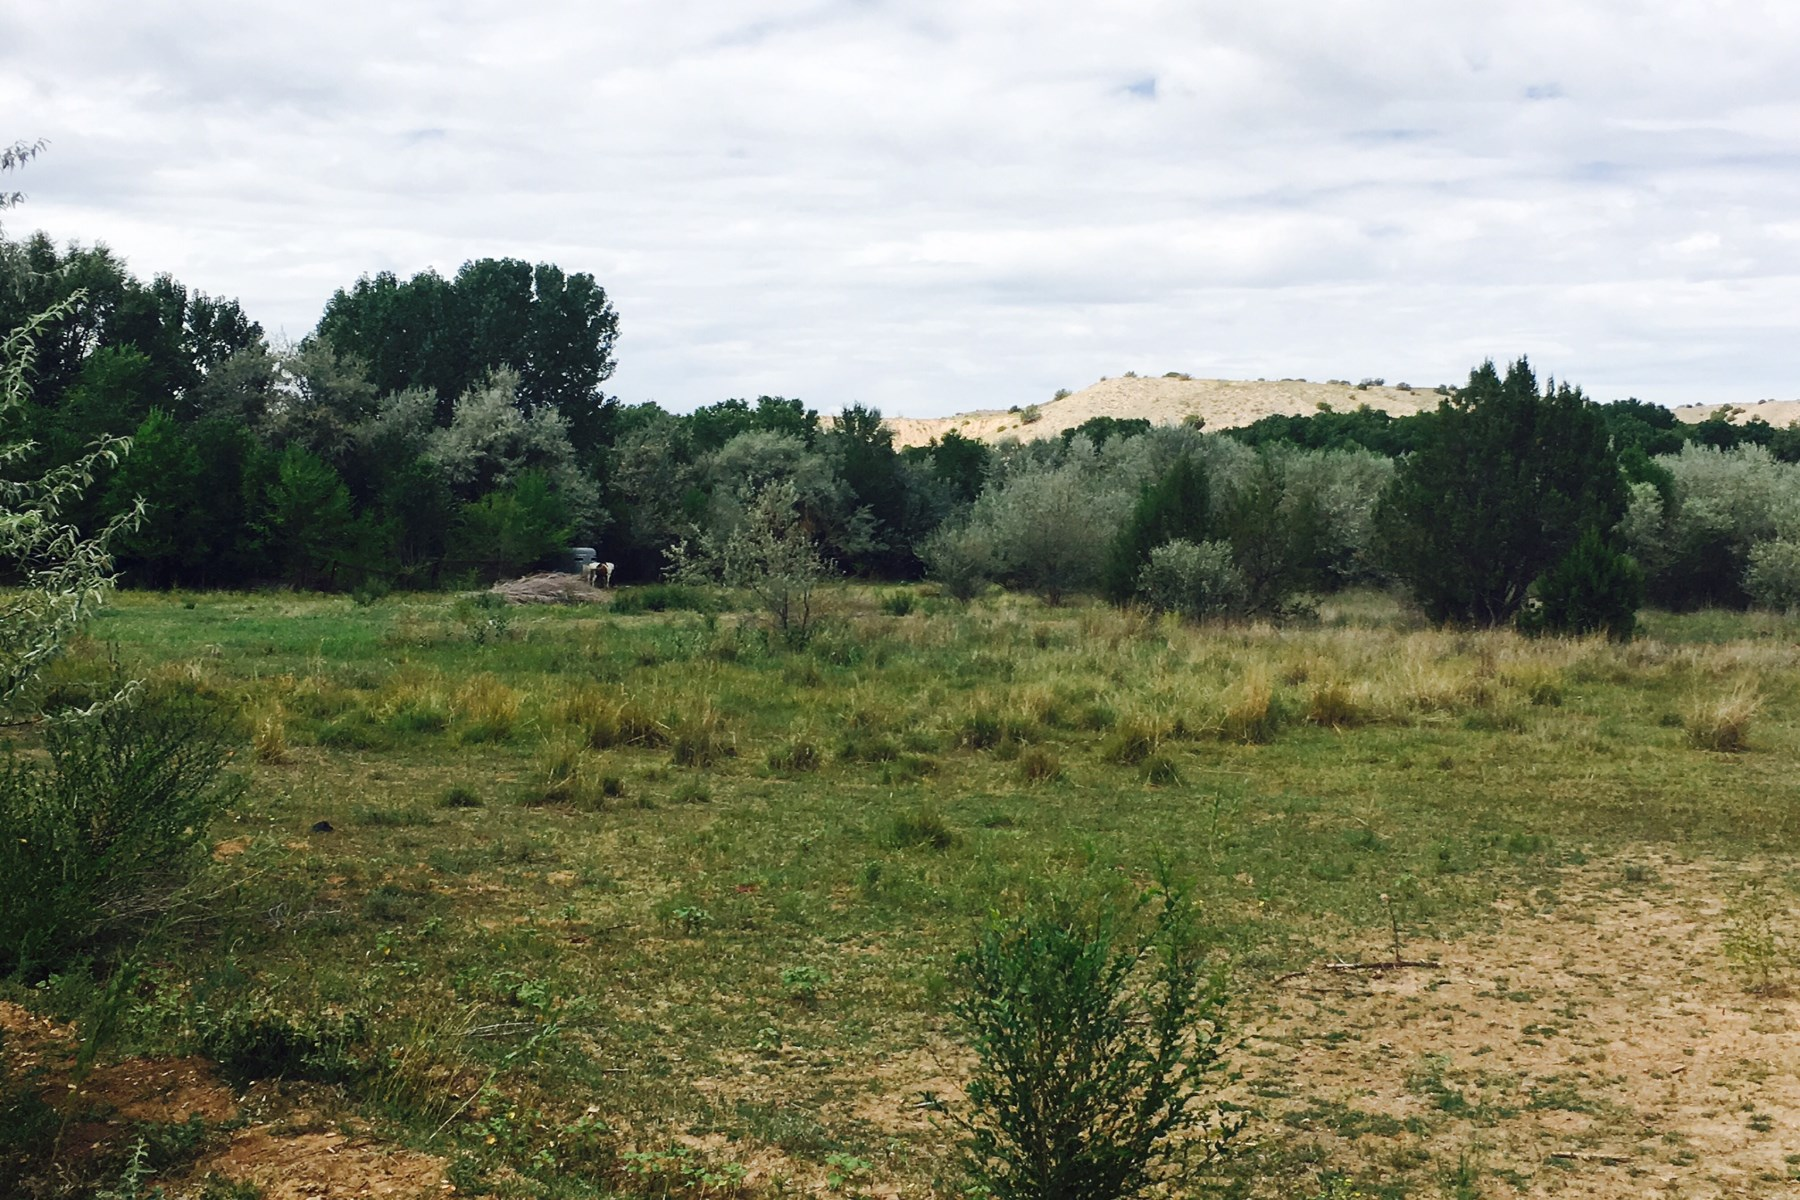 Land for Sale at 21 and 27 Lower Firehouse Rd 21 & 27 Lower Firehouse Road, Espanola, New Mexico, 87532 United States